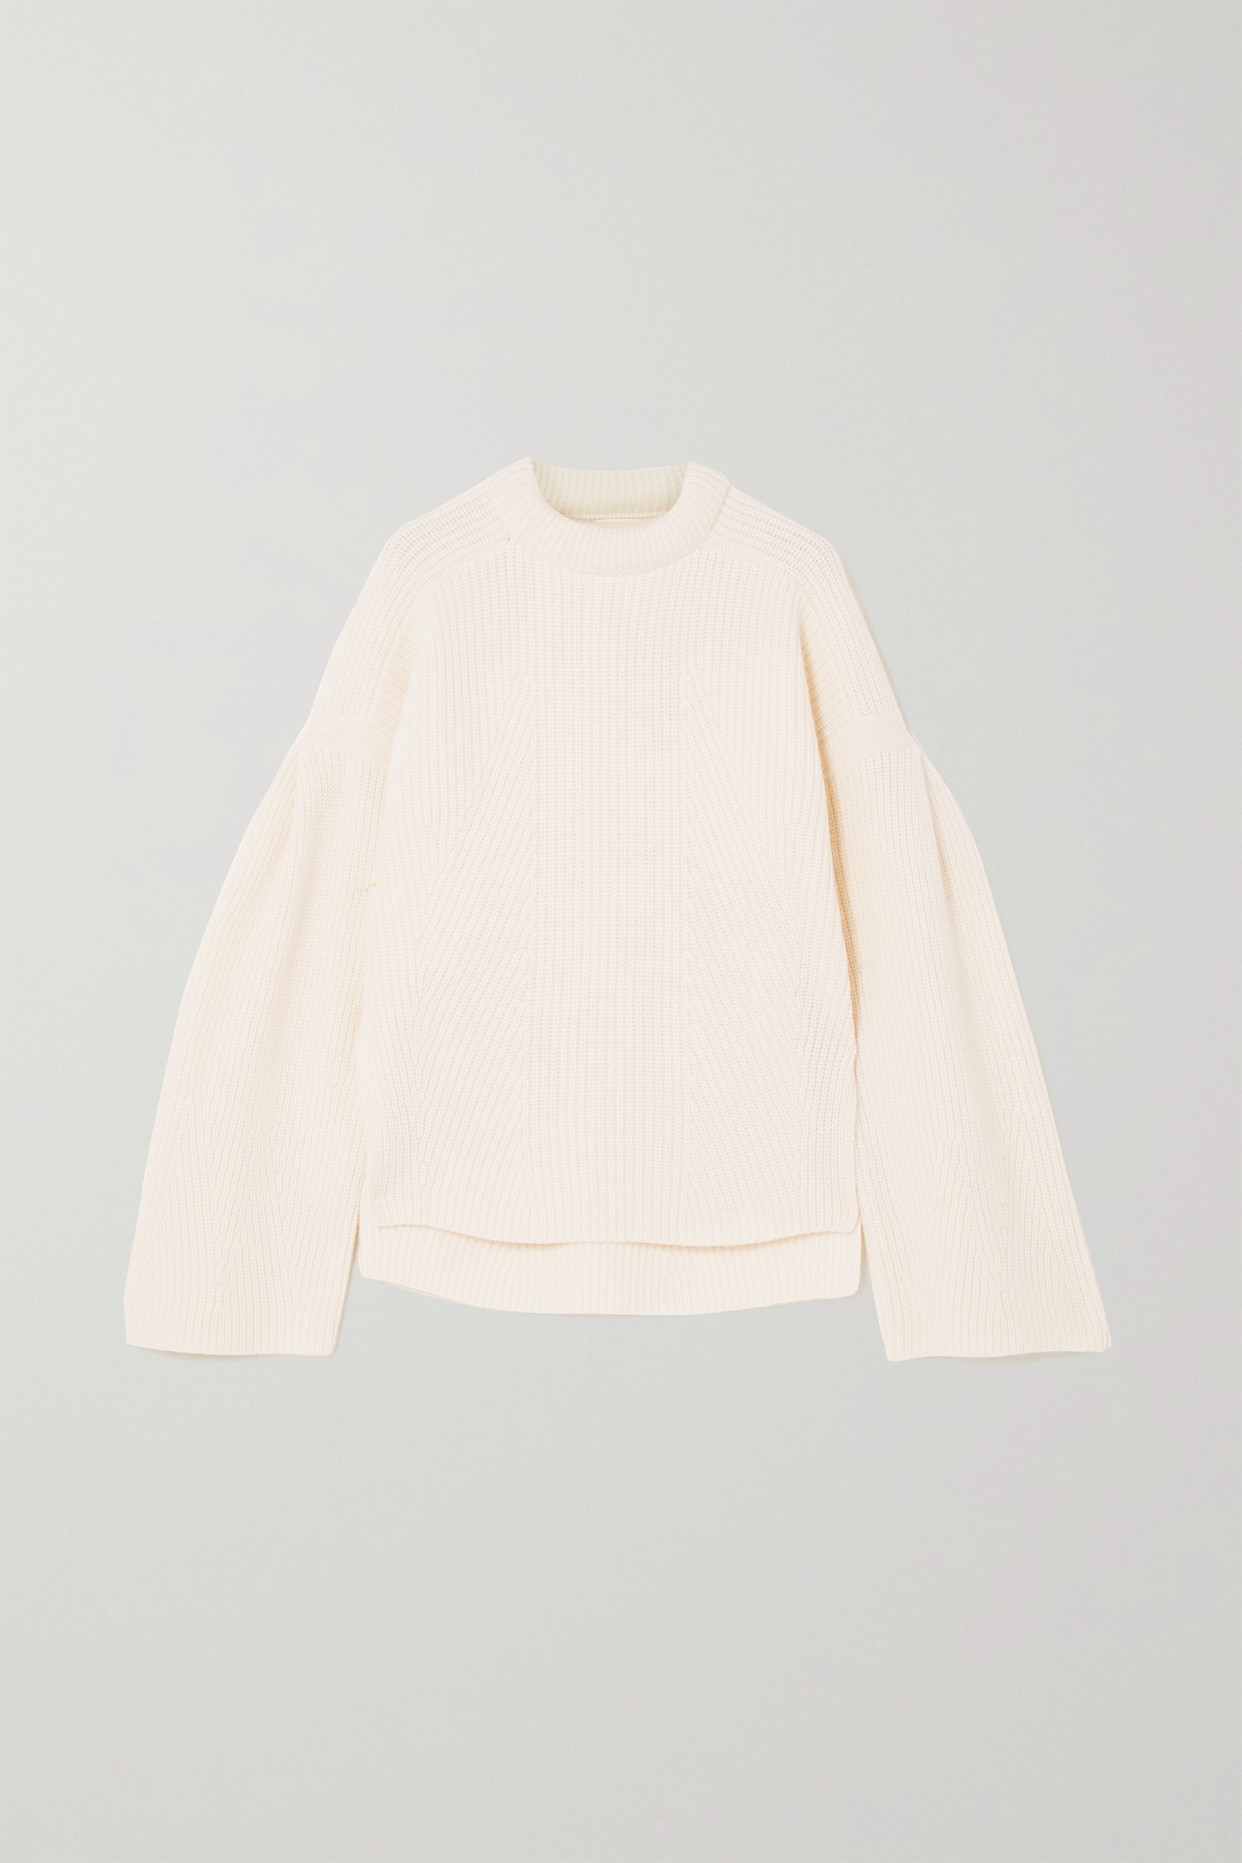 LOULOU STUDIO - Gargalo Oversized Ribbed Wool And Cashmere-blend Sweater - Ivory - large